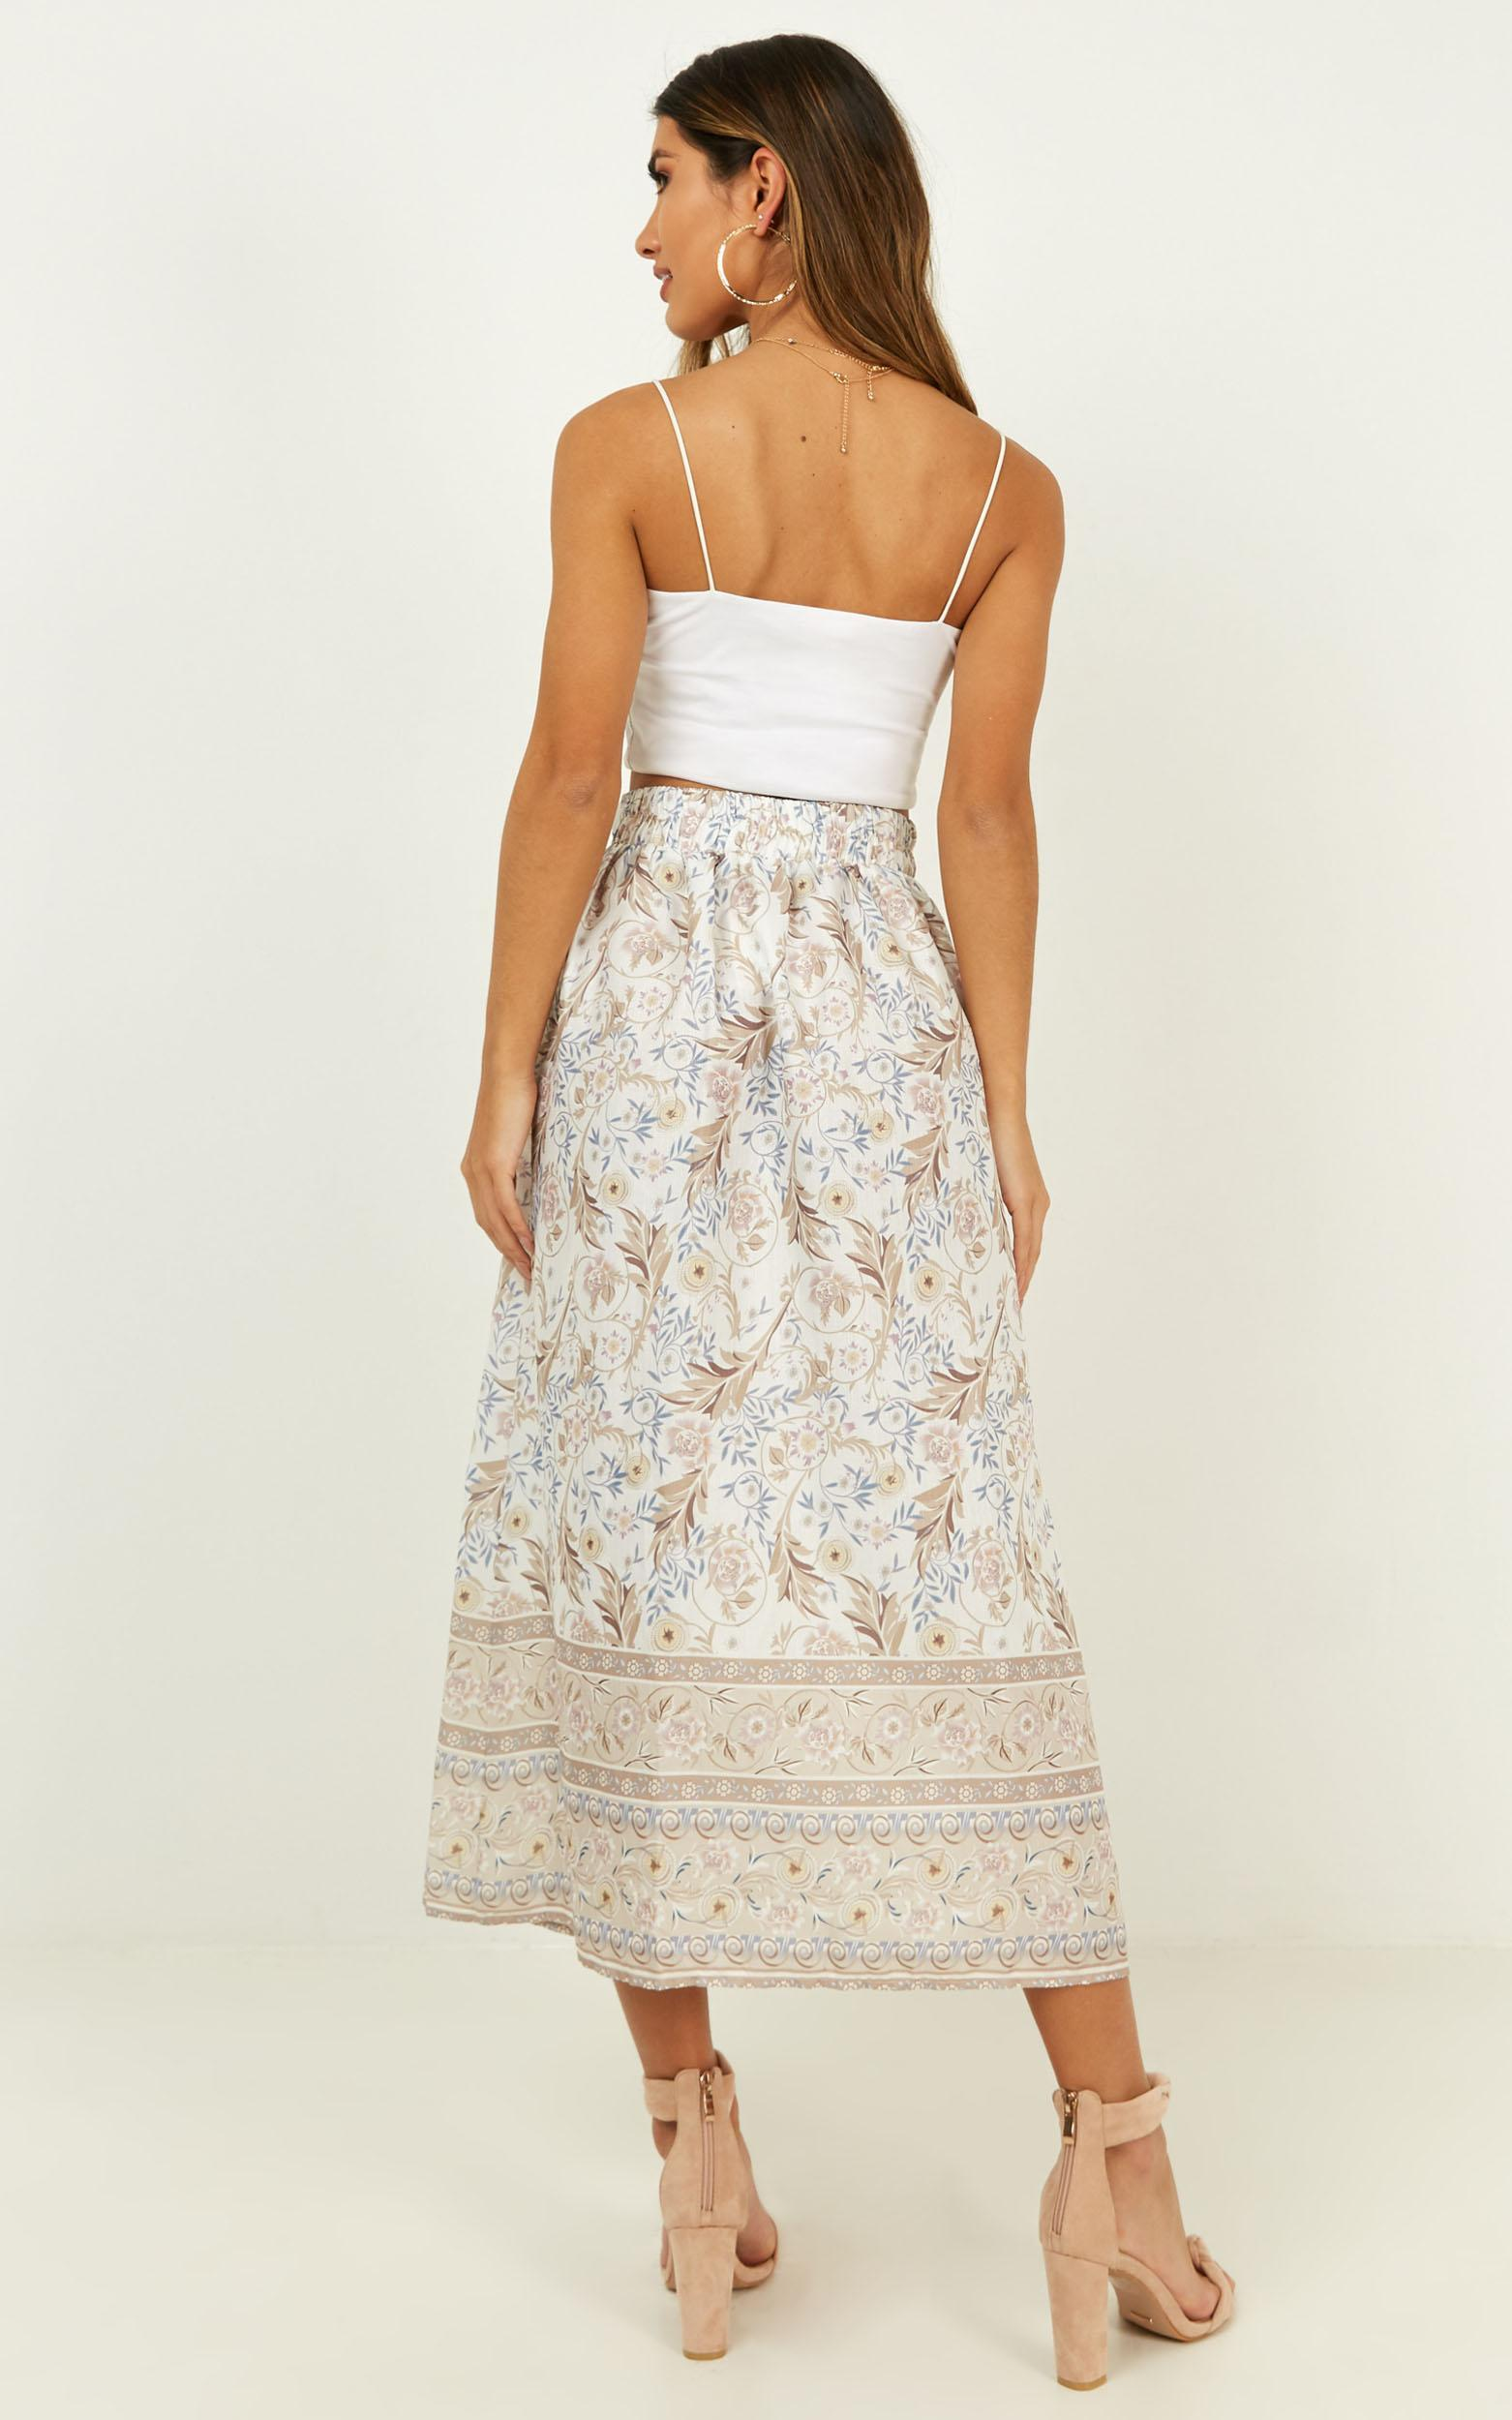 For All I Know skirt in white print - 12 (L), White, hi-res image number null